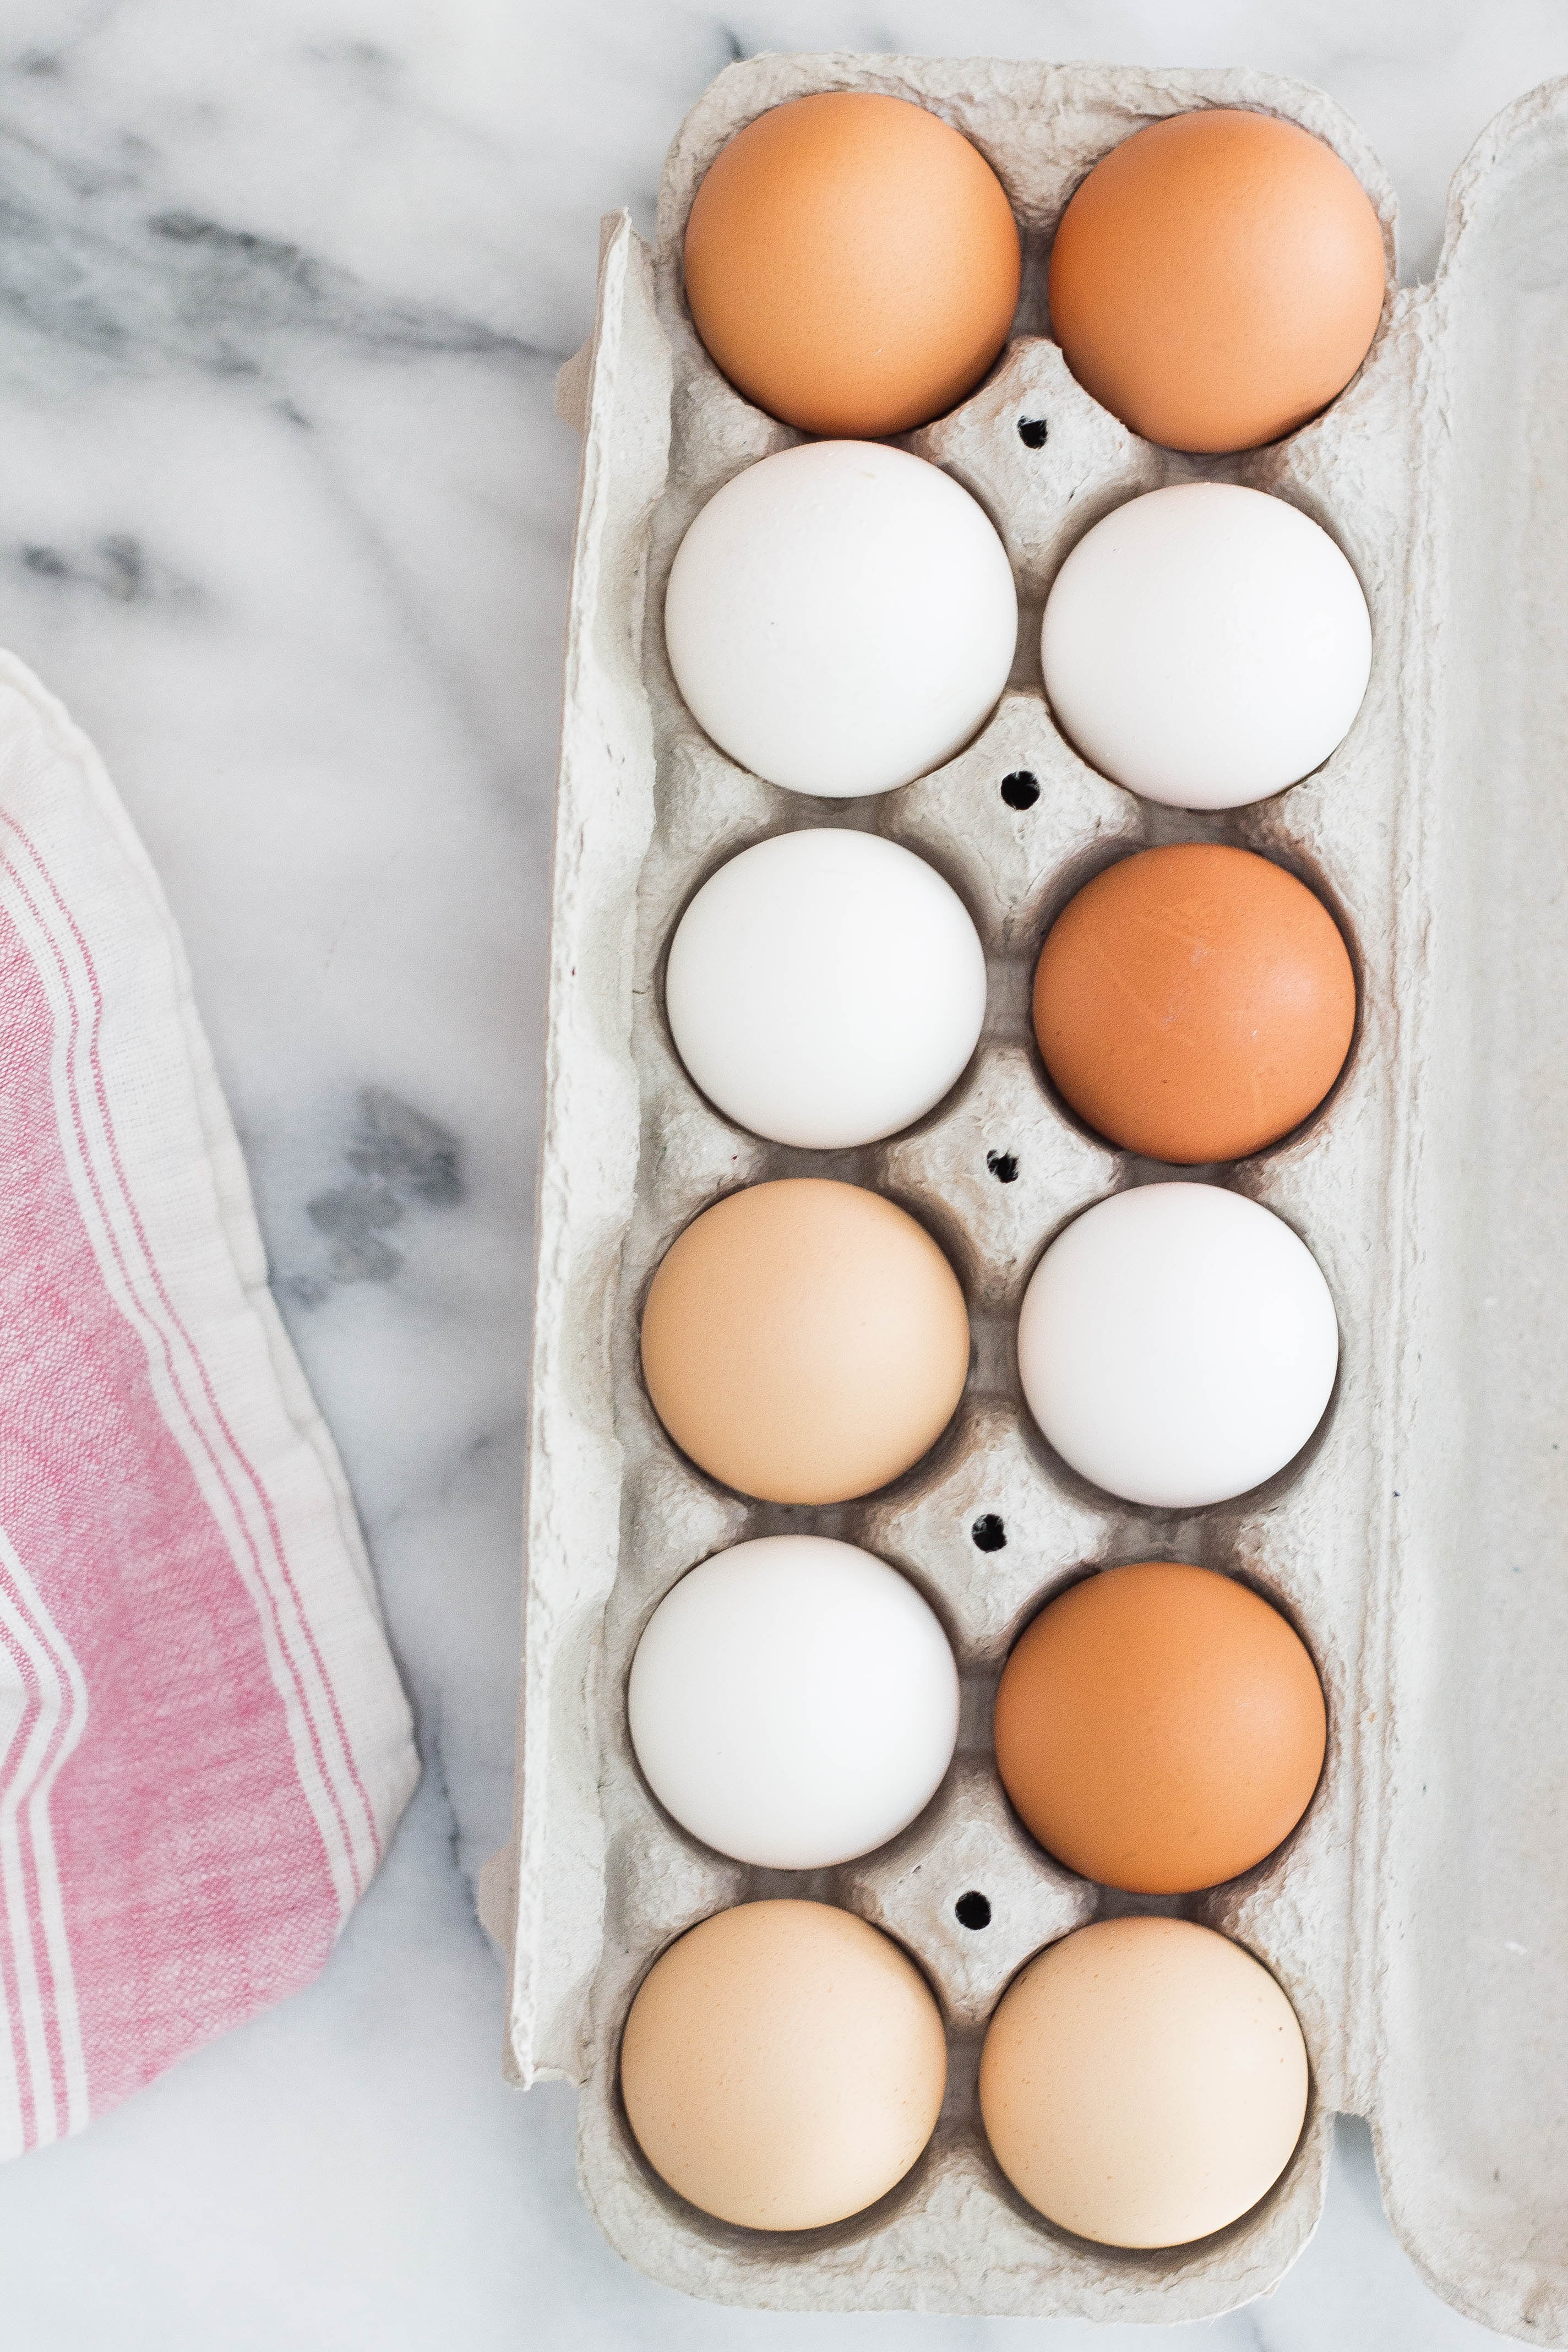 A Nutritionist Explains: What You Need to Know About Choline